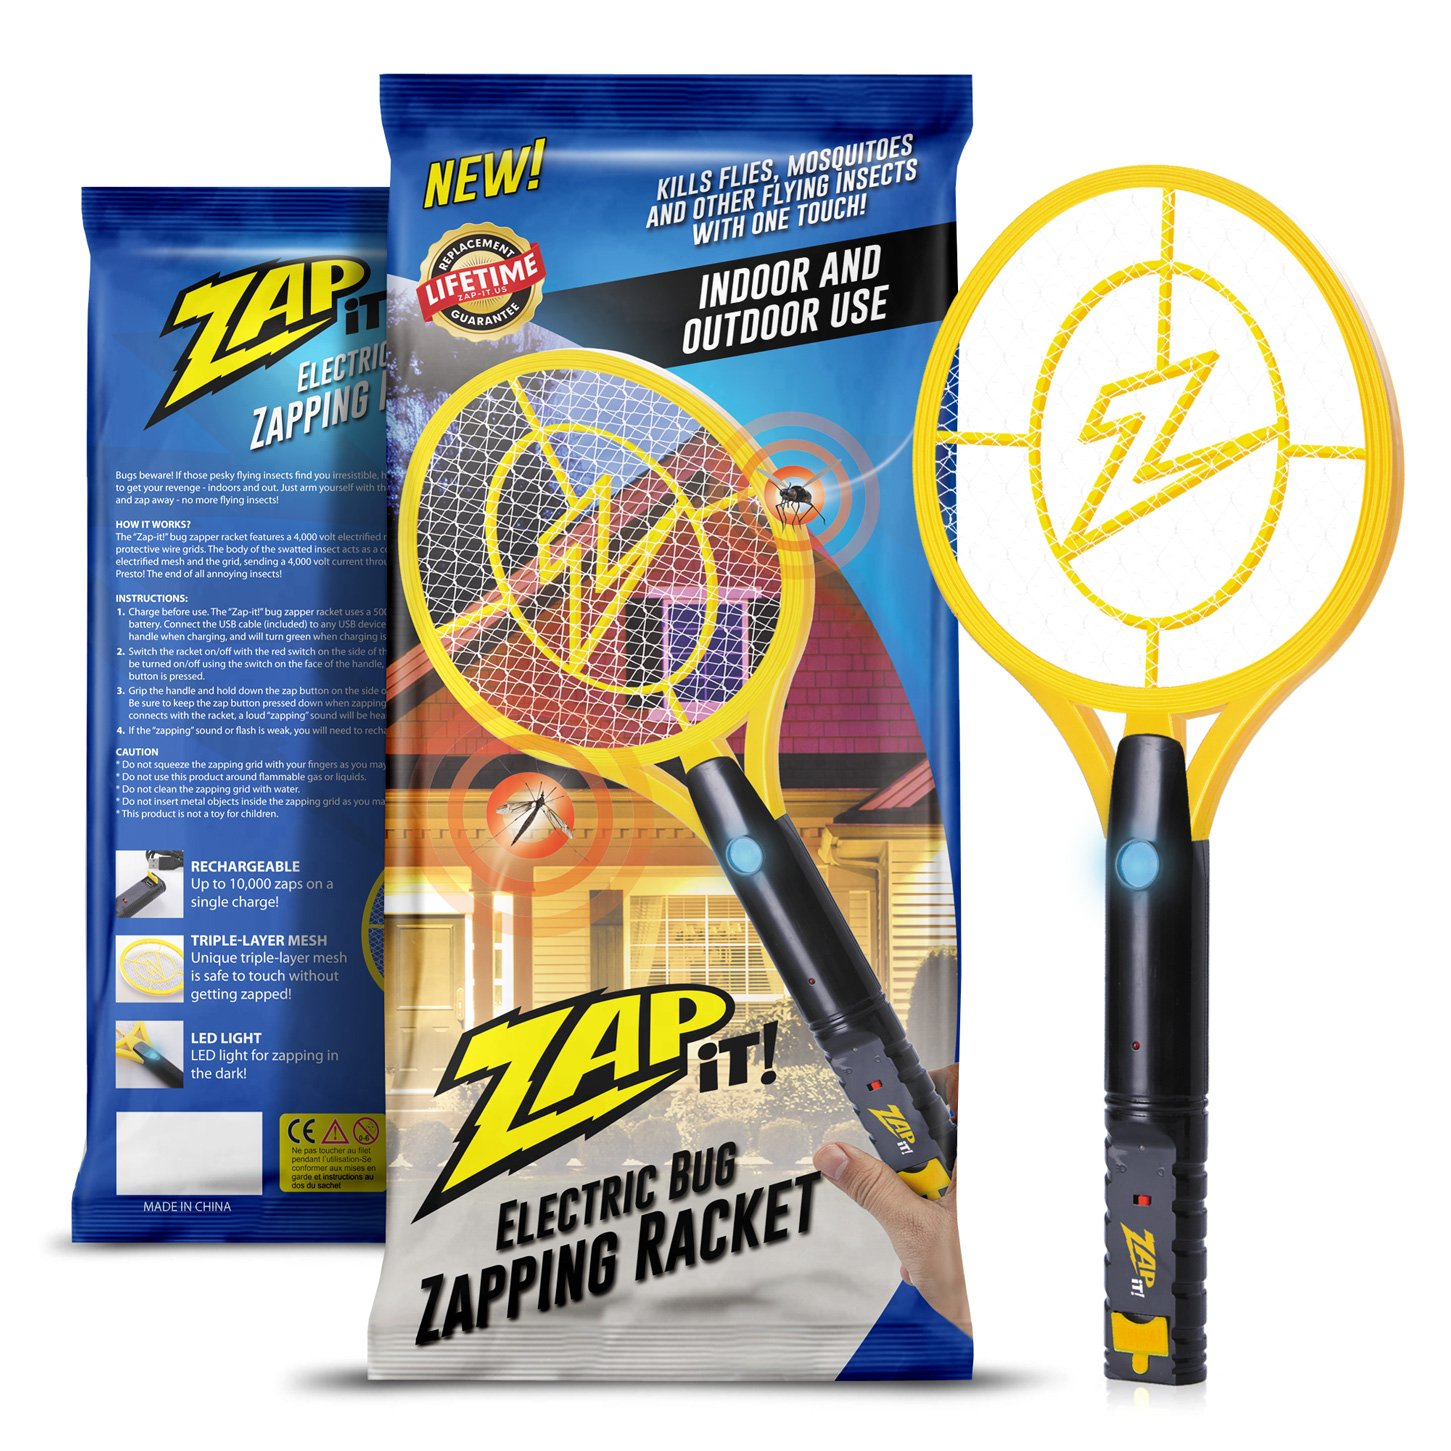 Check Out ZapProducts On Amazon!